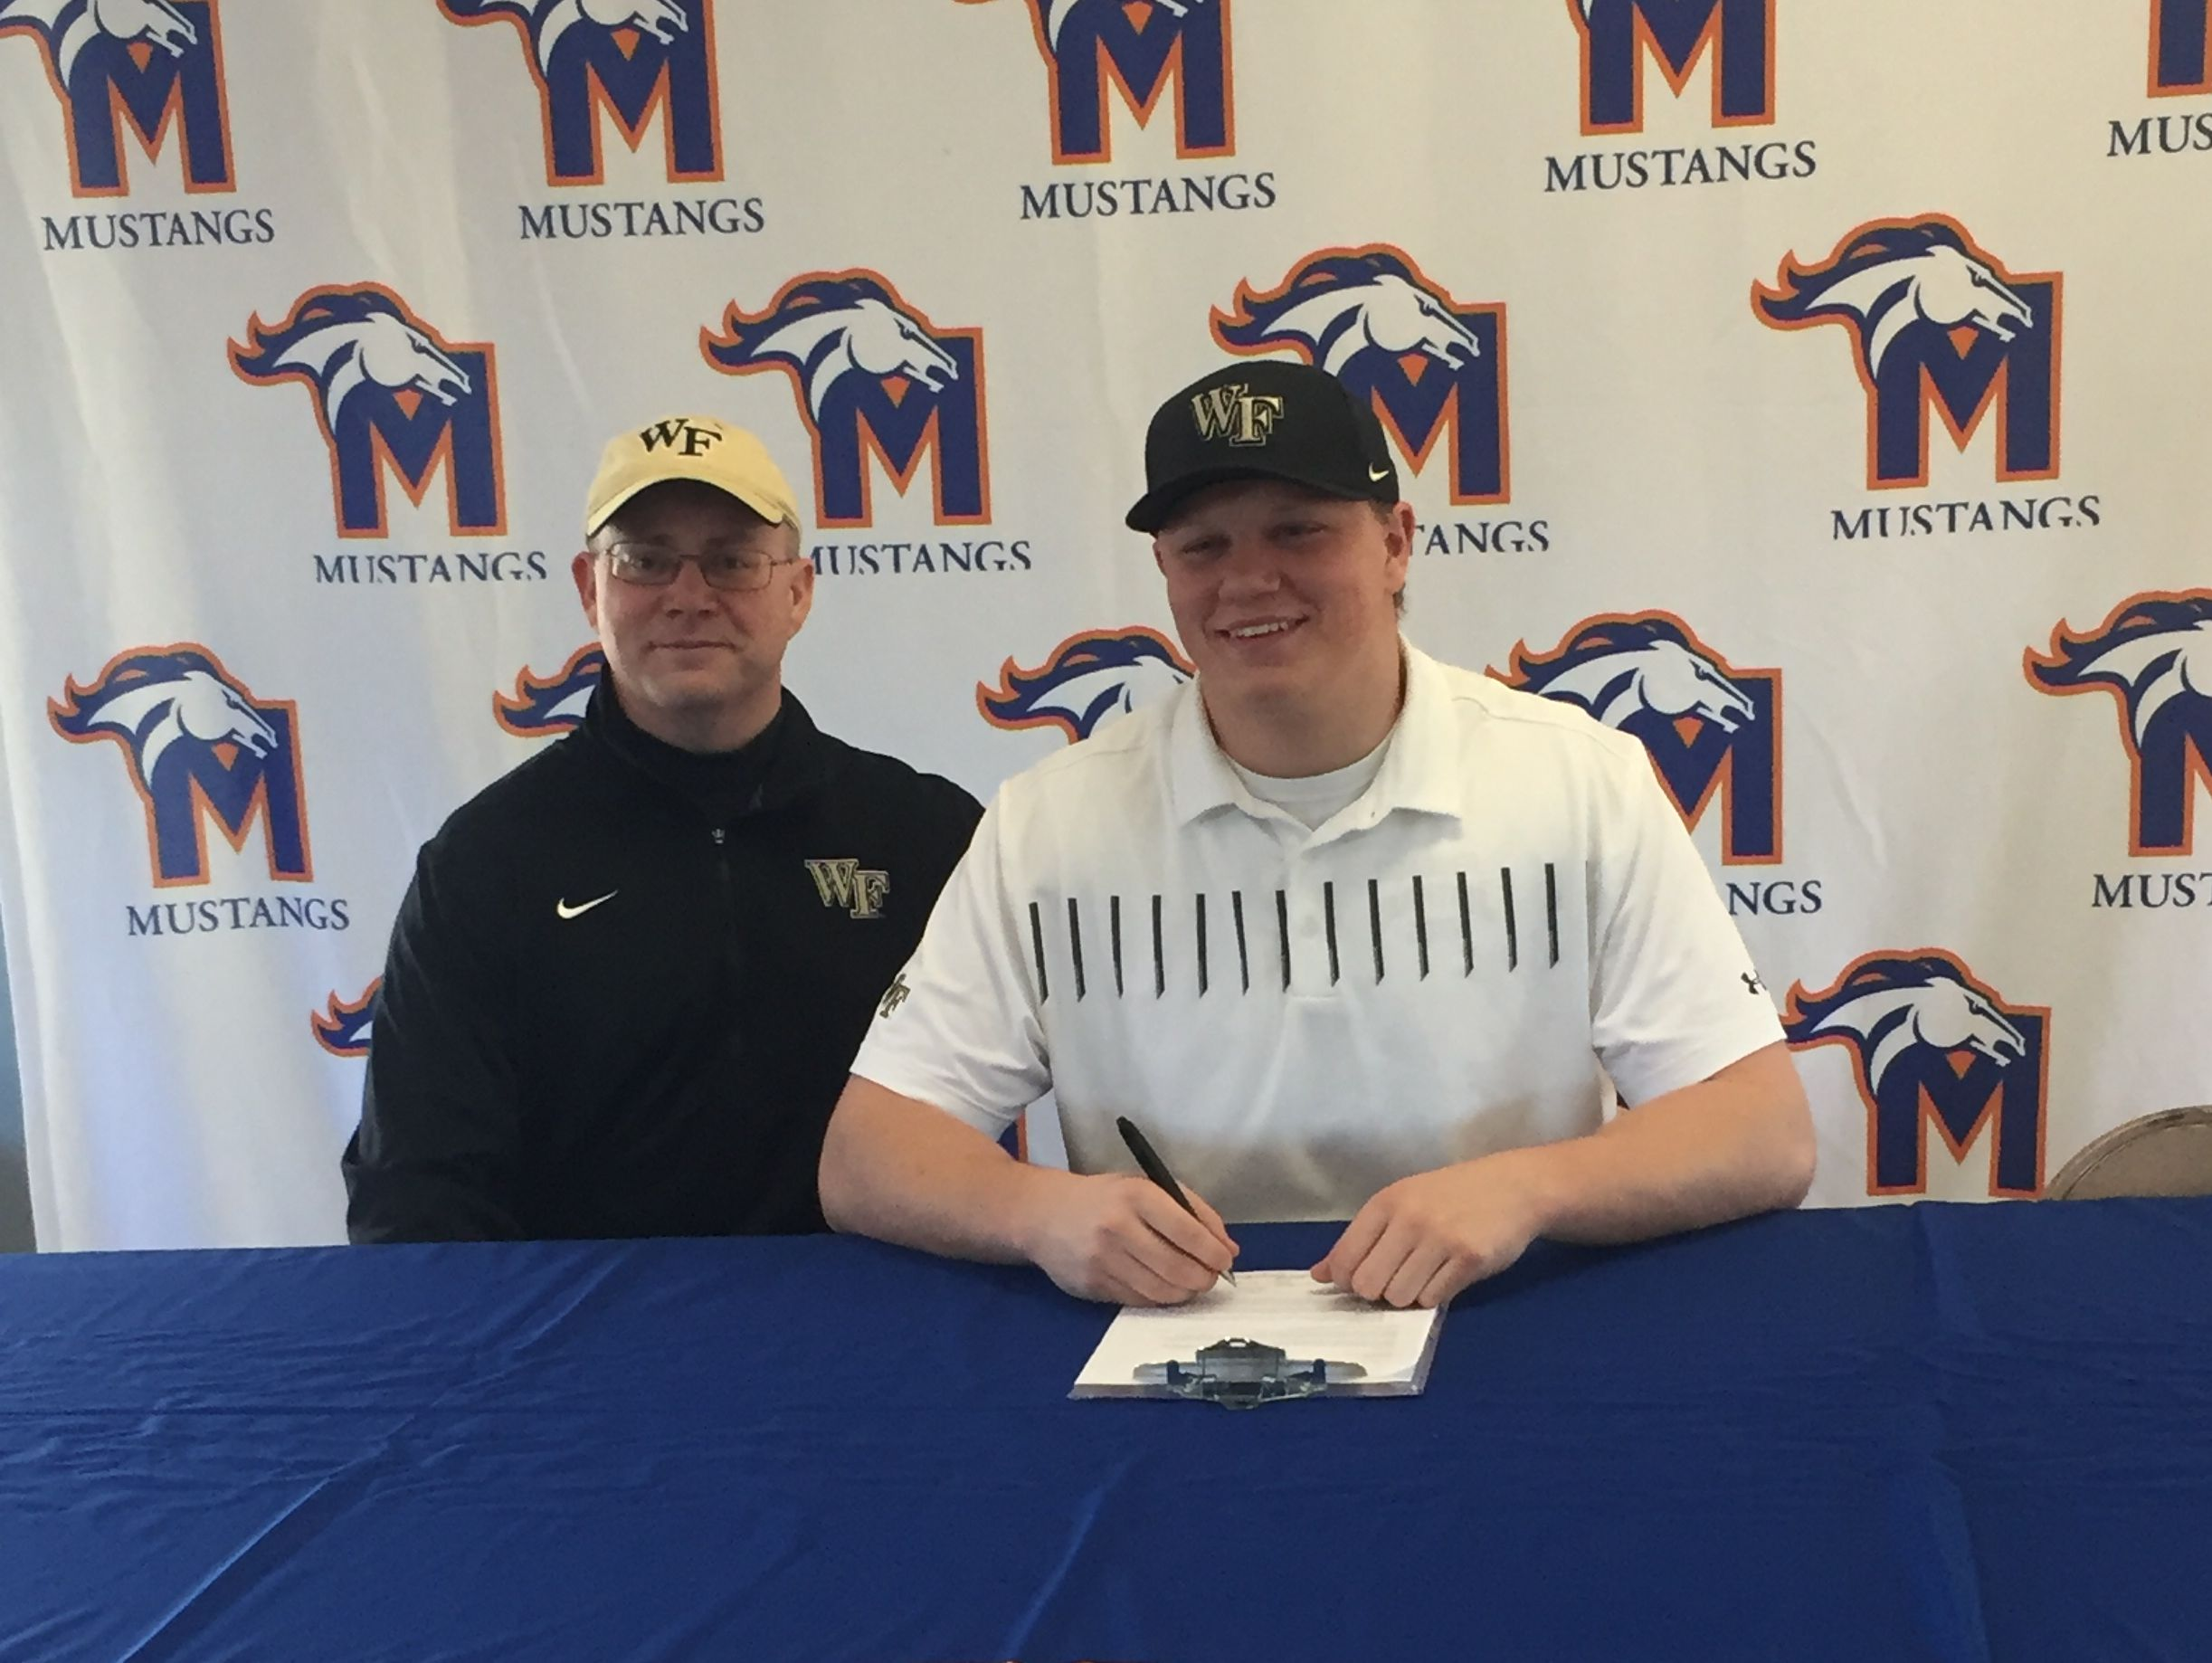 Millbrook native Allan Rappleyea, a Milton Academy senior, signs his national letter of intent to play football at Wake Forest University.